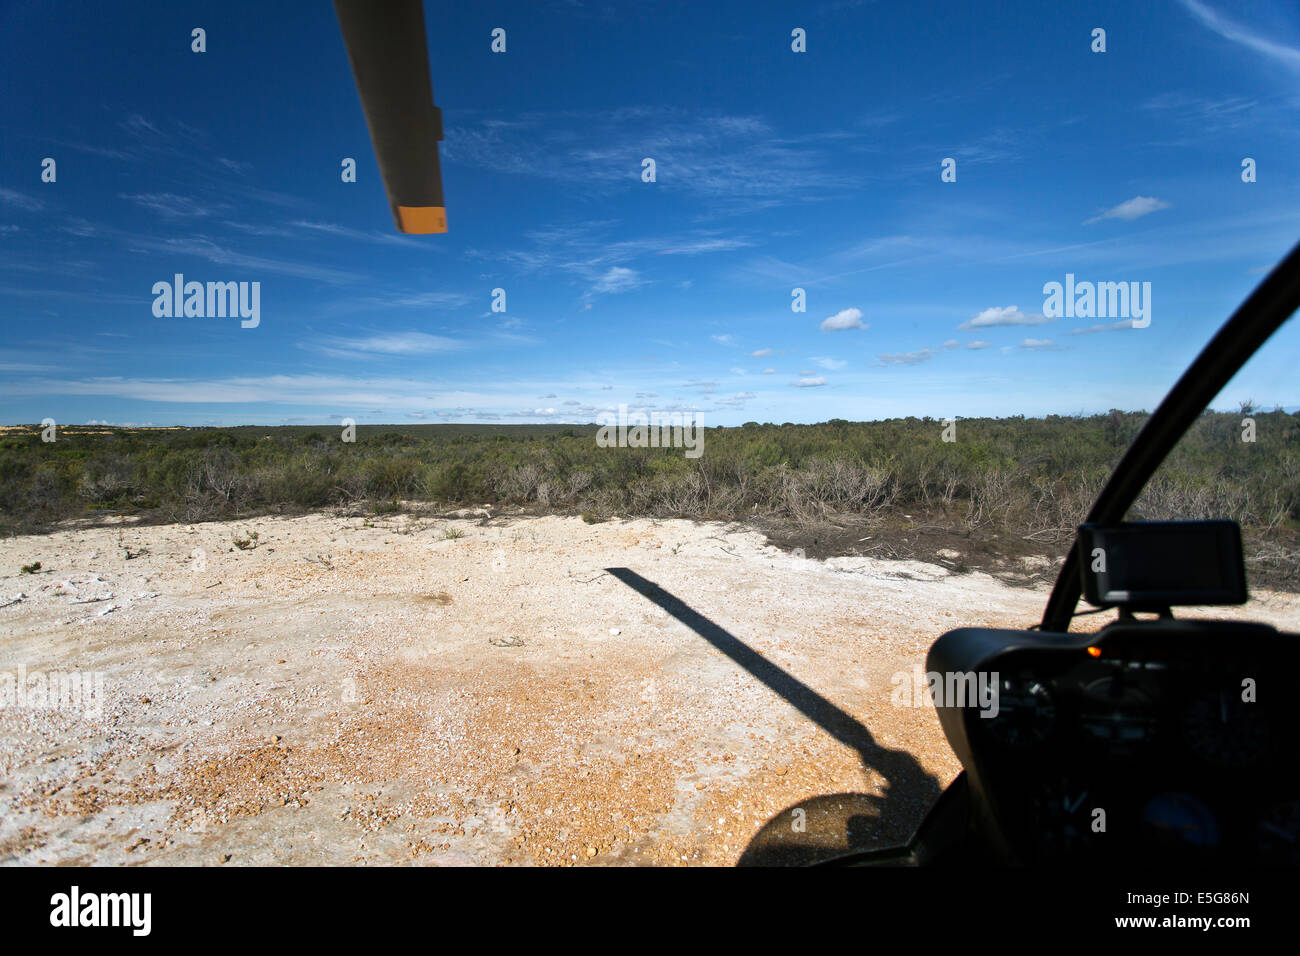 Helicopter blade seen from inside the cockpit - Stock Image